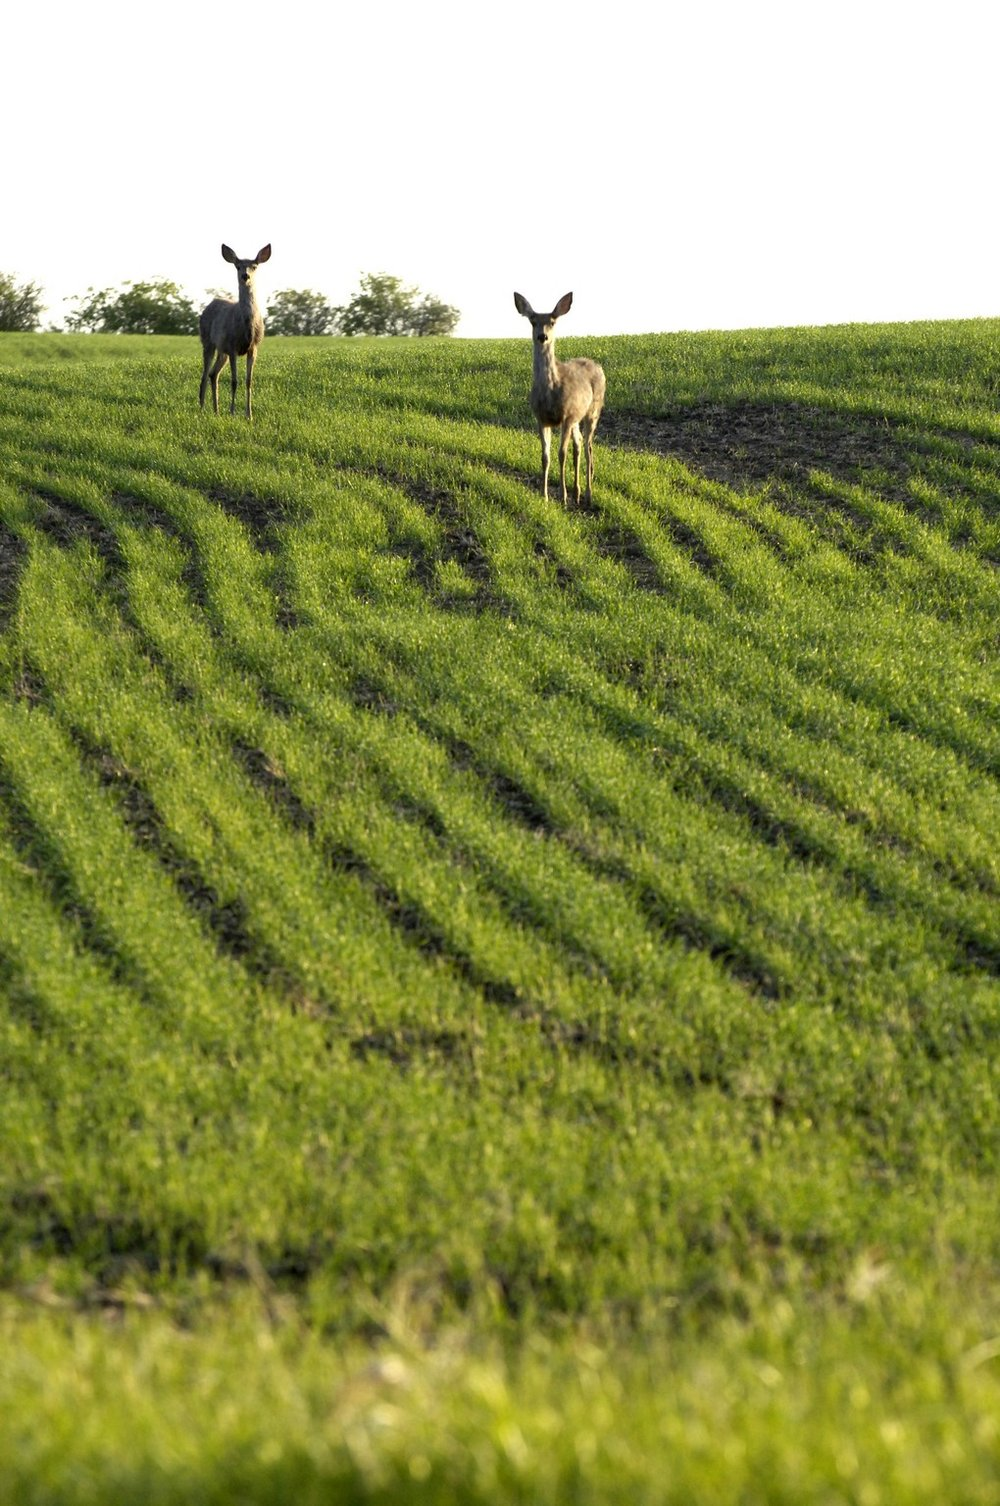 Deer on field - Copy.jpg